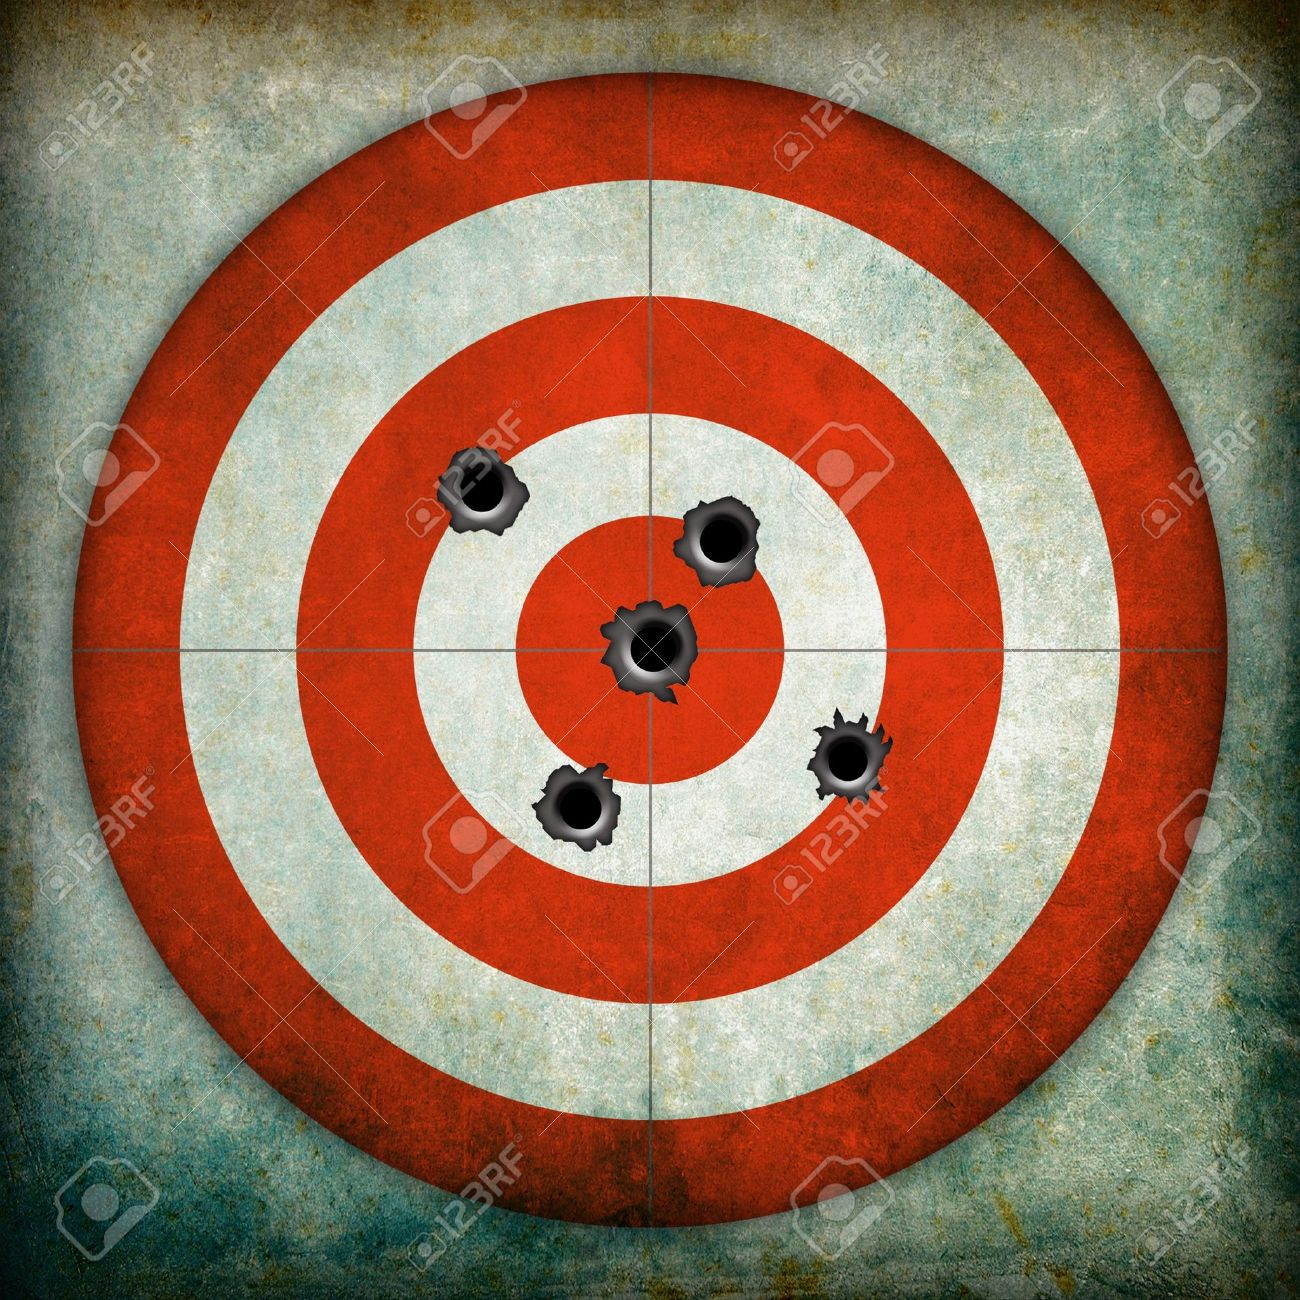 Target With Bullet Holes Grunge Background